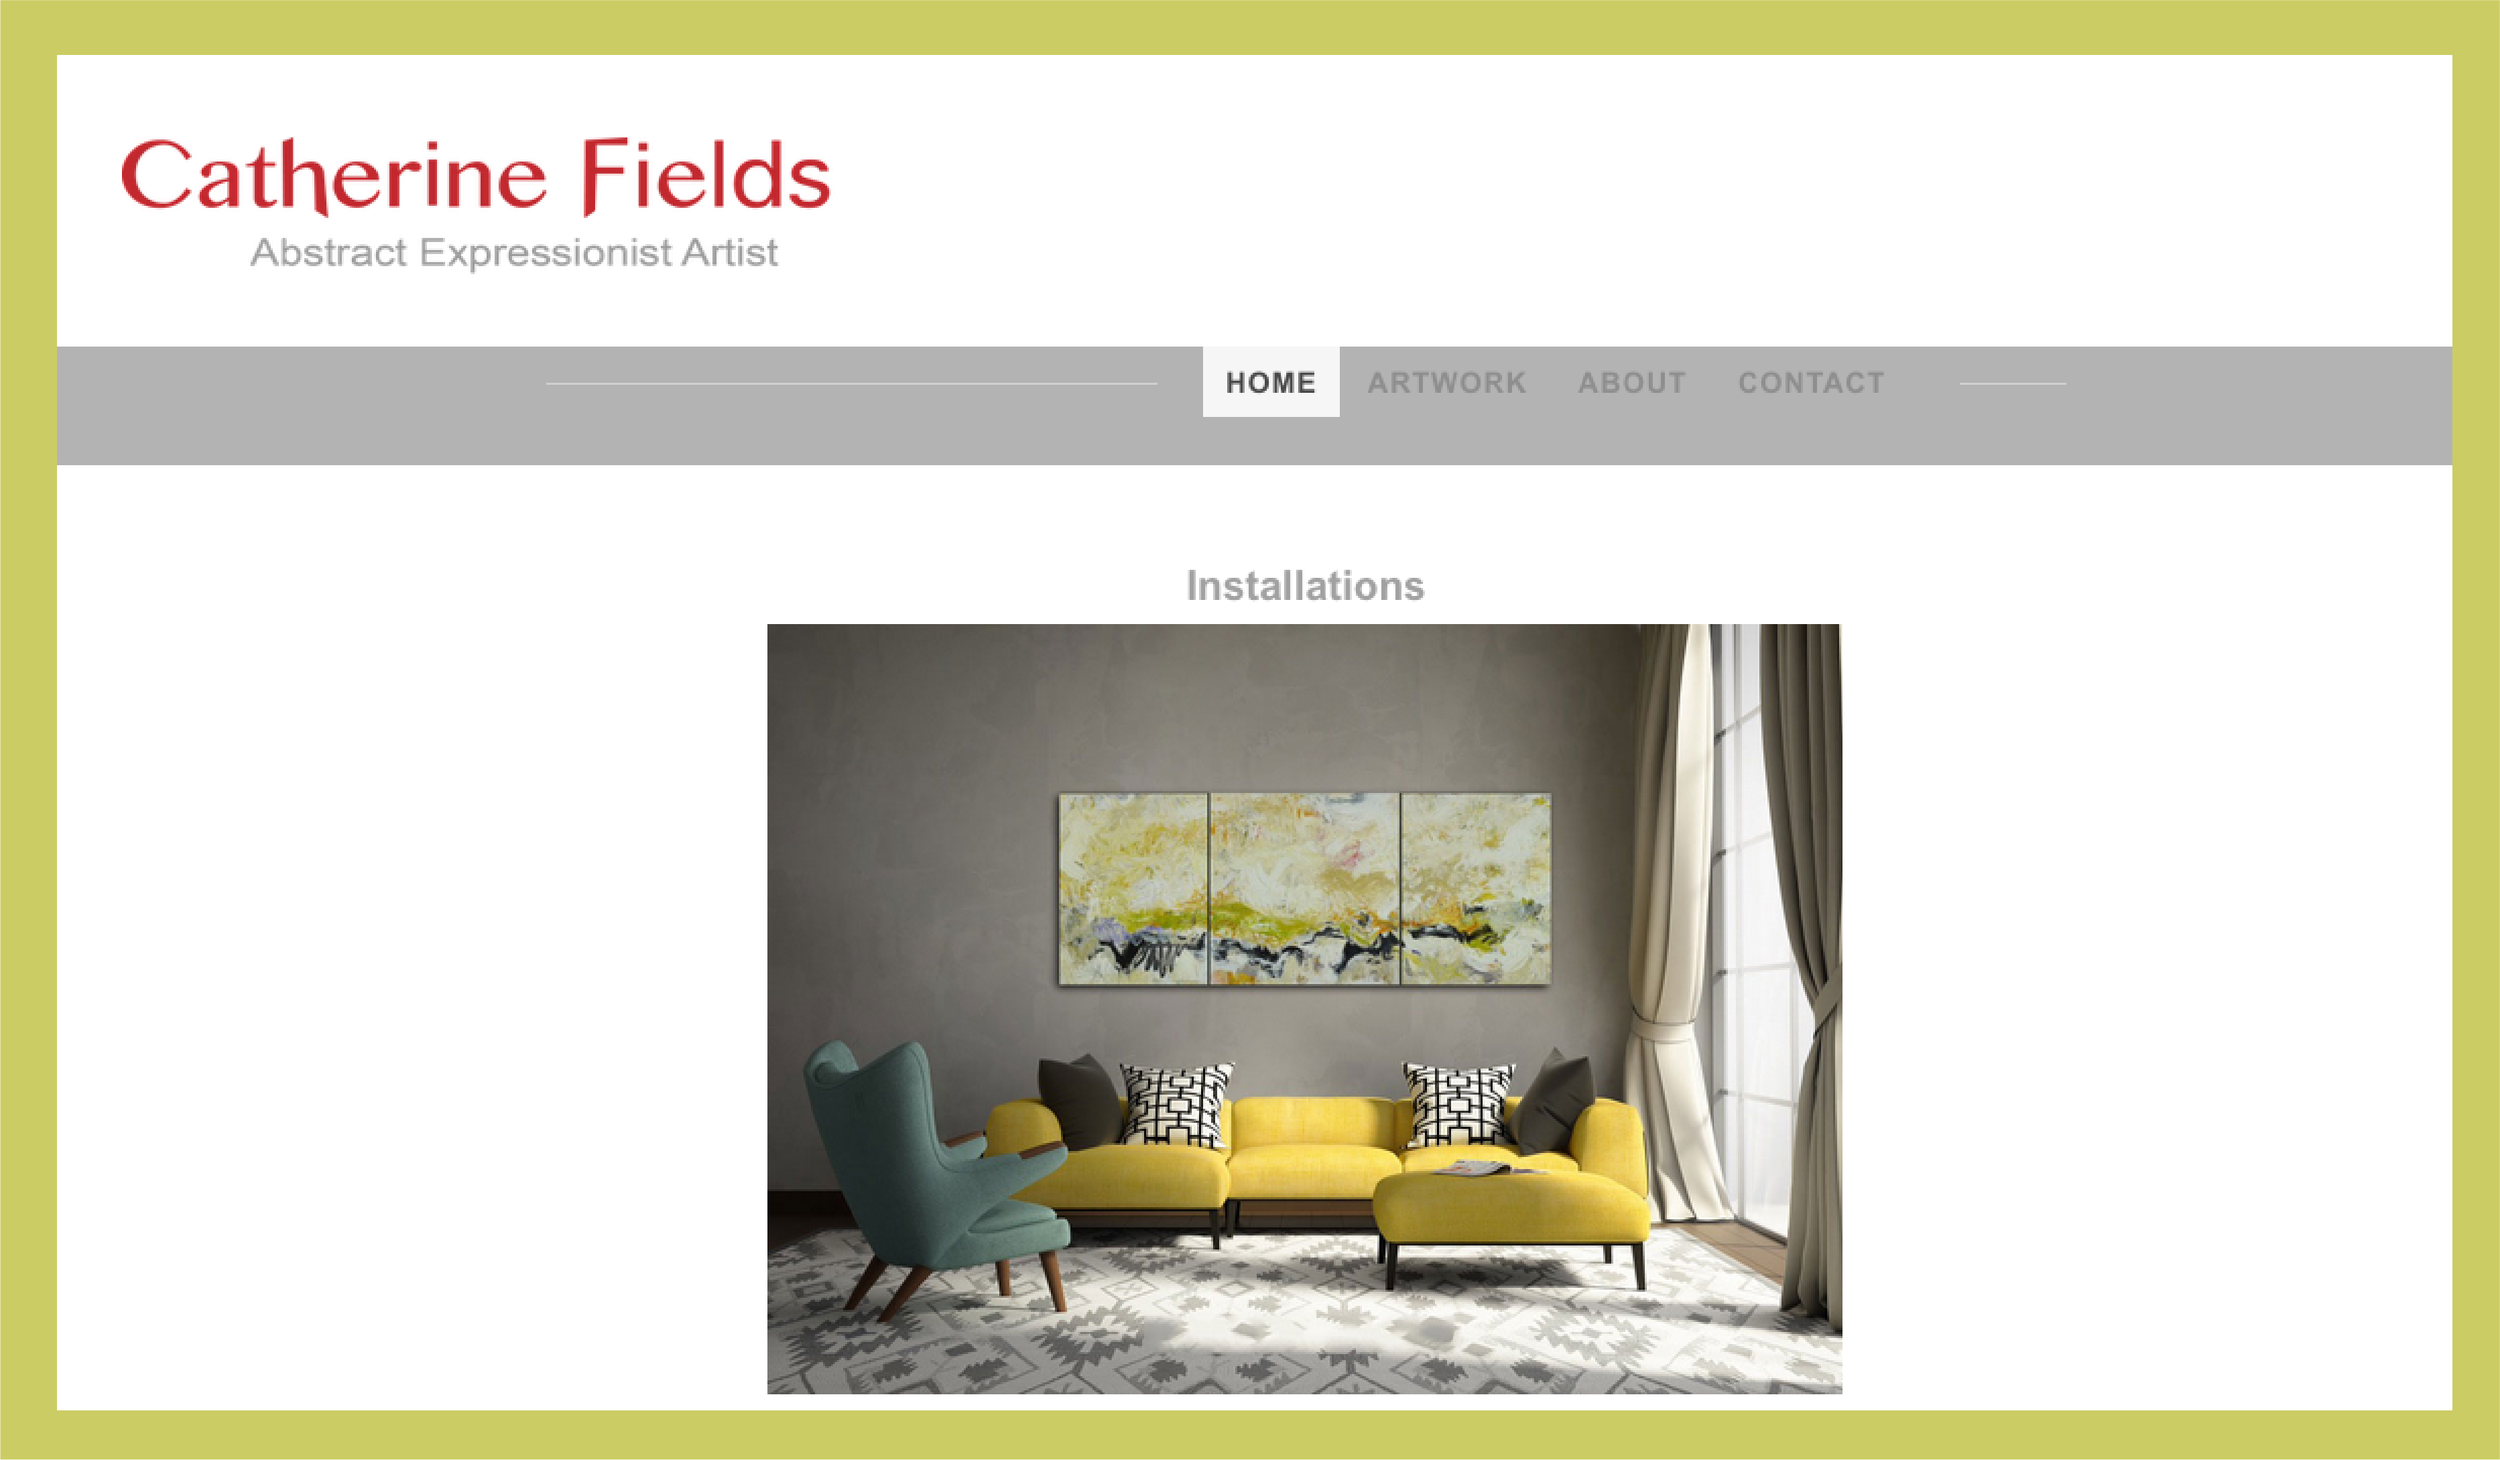 Website design  - Catherine Fields' art website